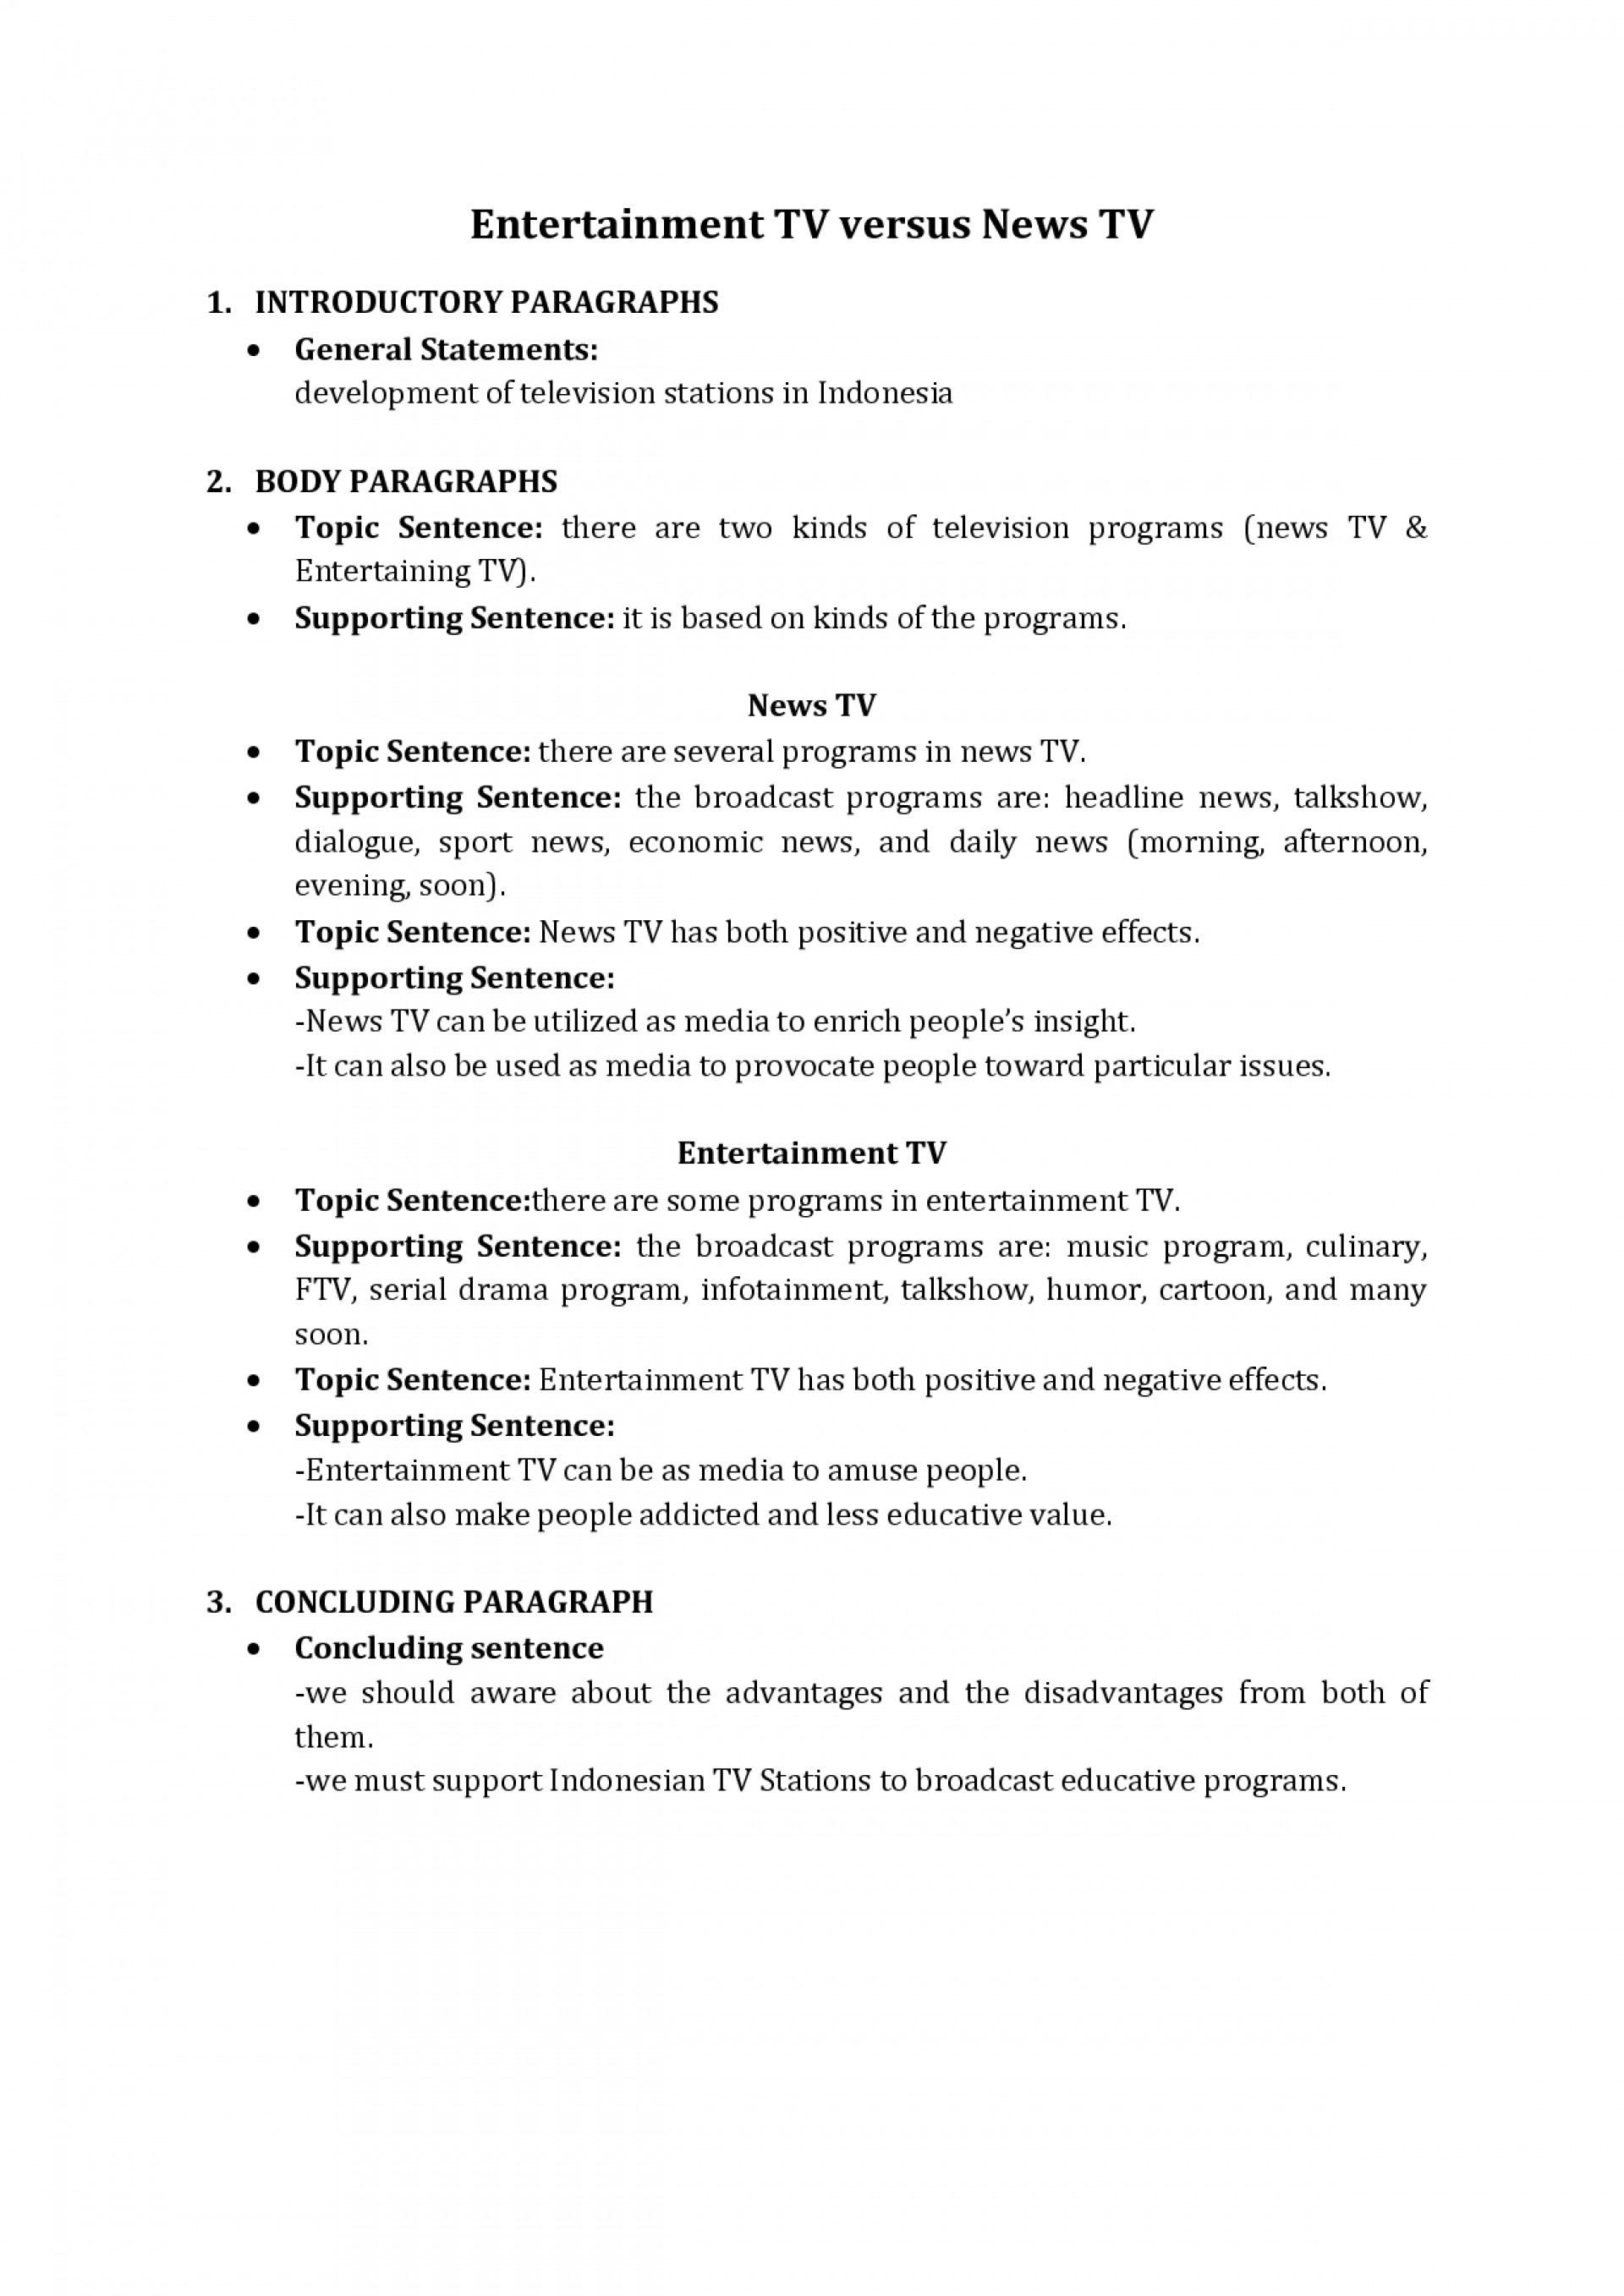 008 College Essay Outline Examples And Search On Pinterest Inmat Example How To Do An Astounding For A Simple Mla Format Sample 1920